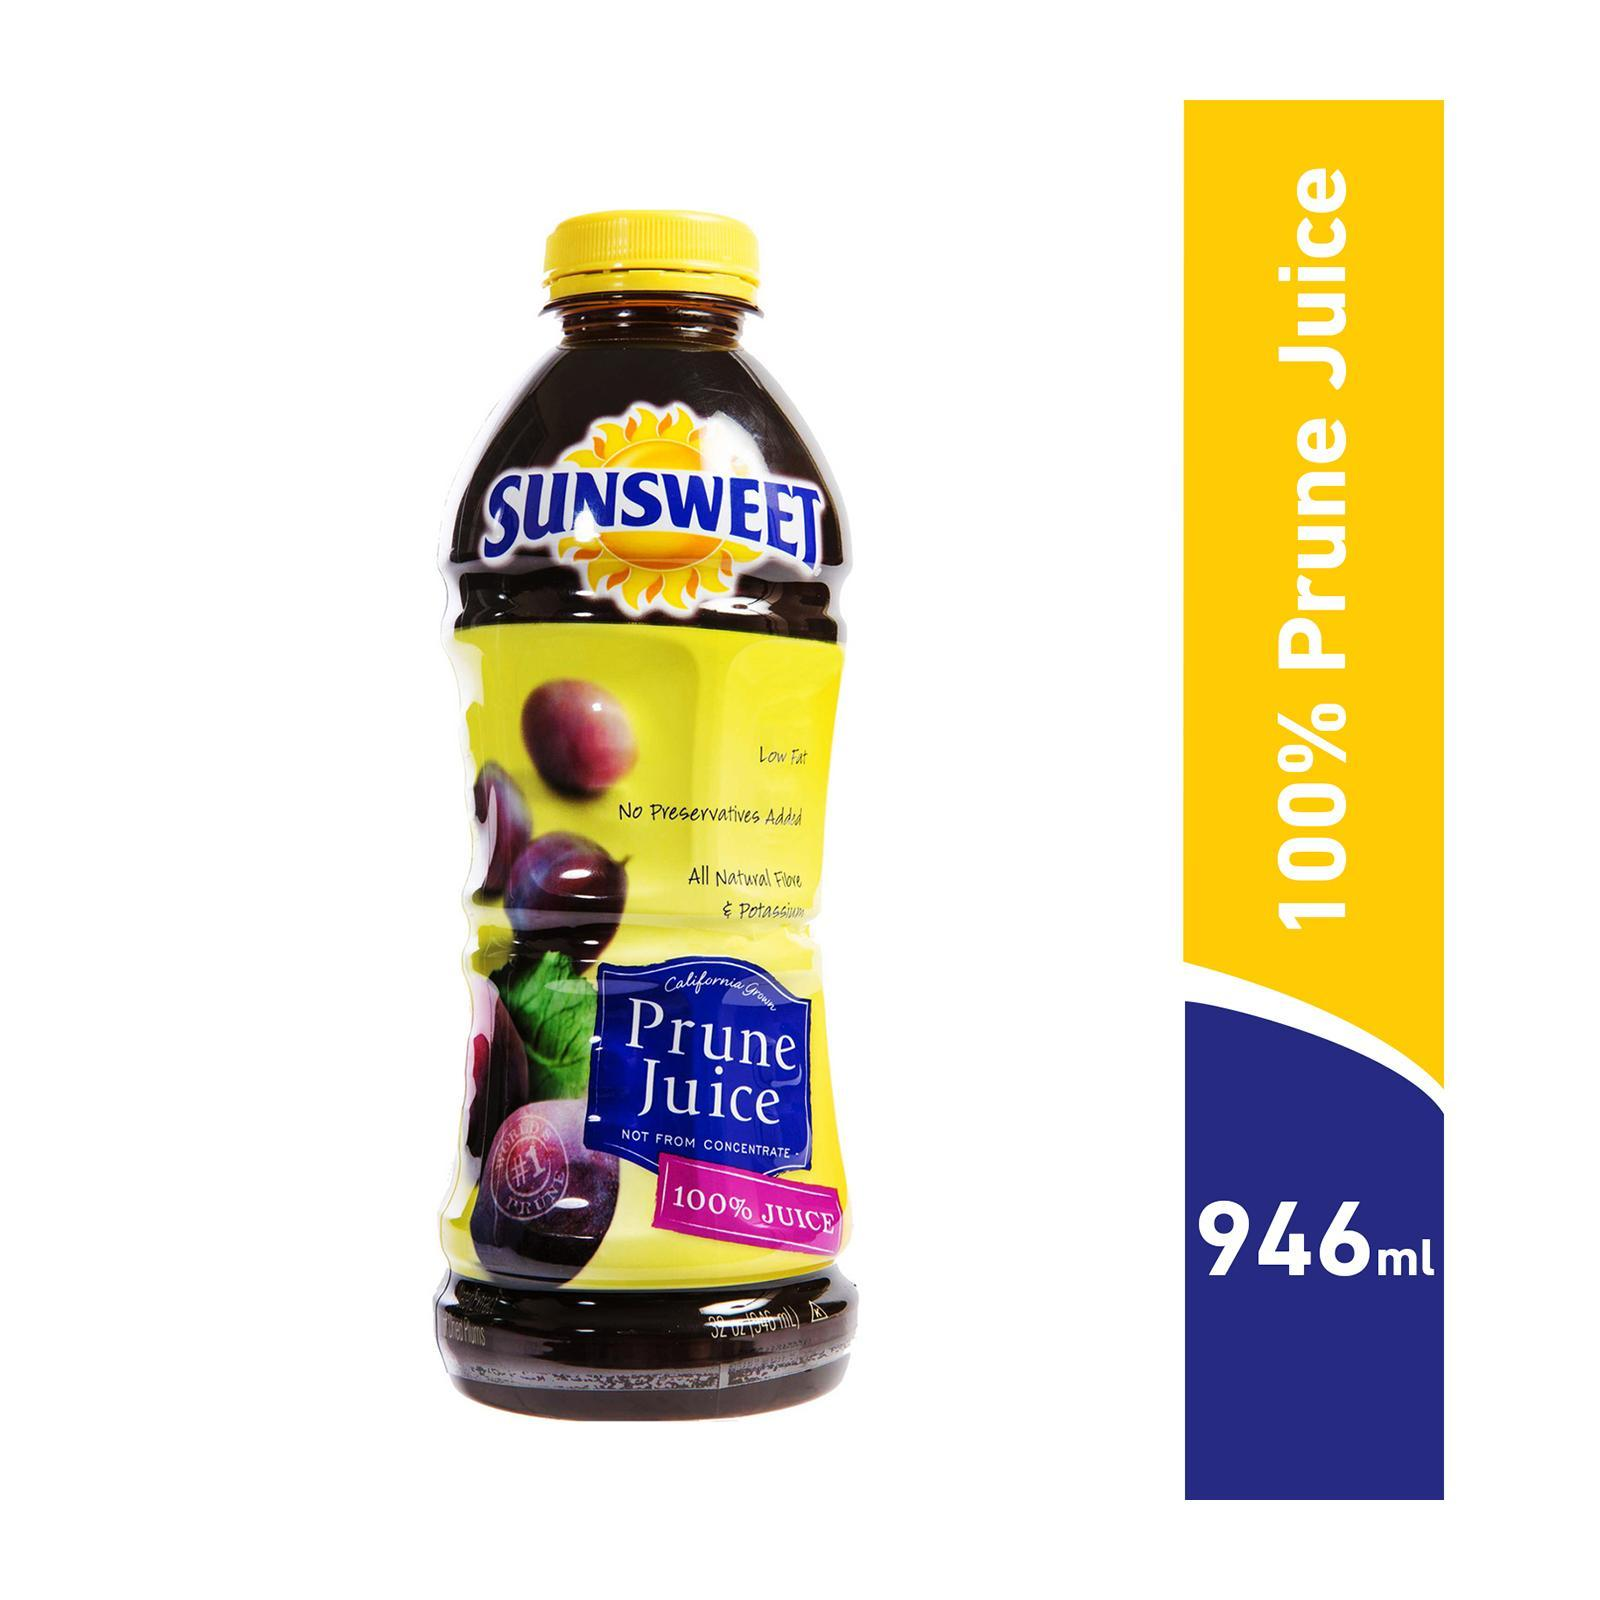 Sunsweet Not From Concentrate Prune Juice